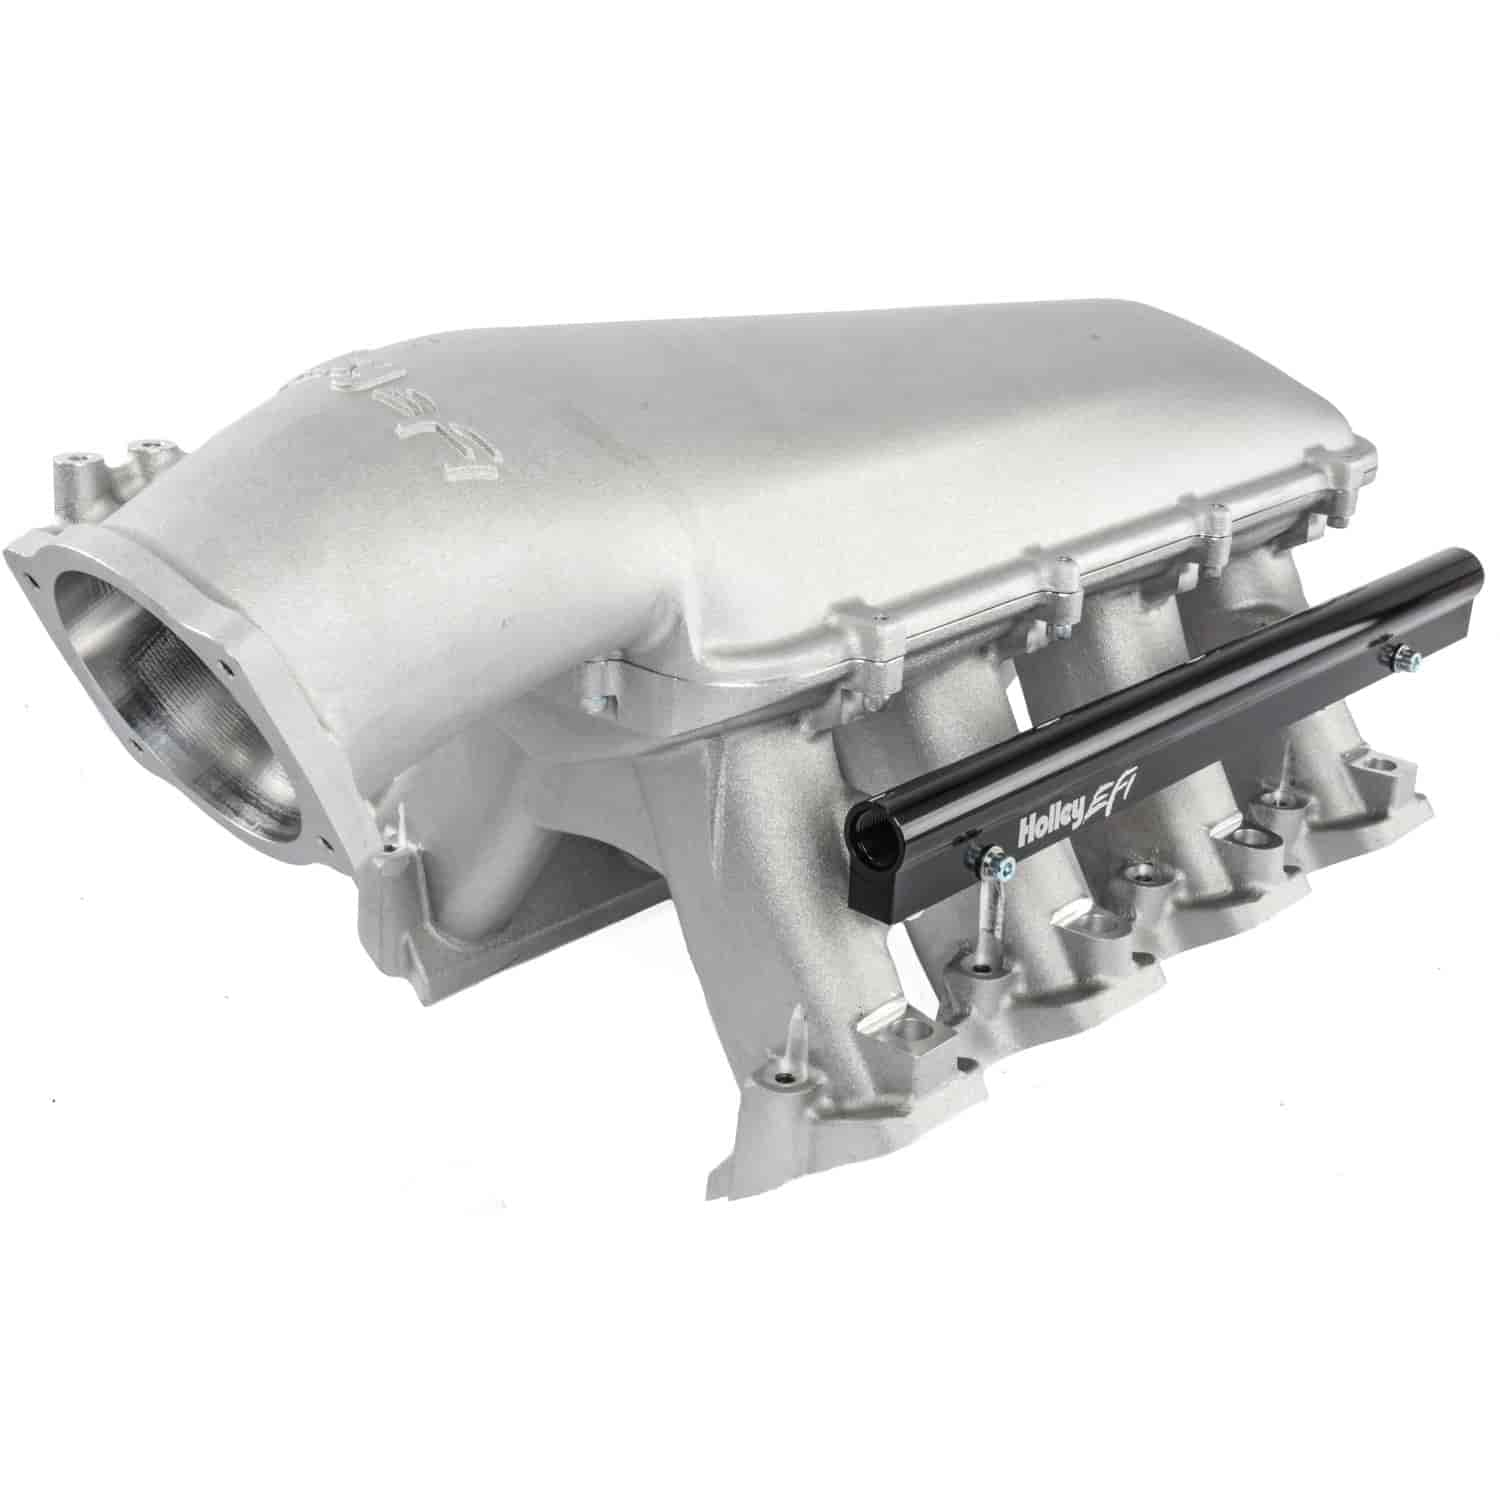 Holley 300-117 - Holley LS Modular High-Ram Intake Manifolds - EFI